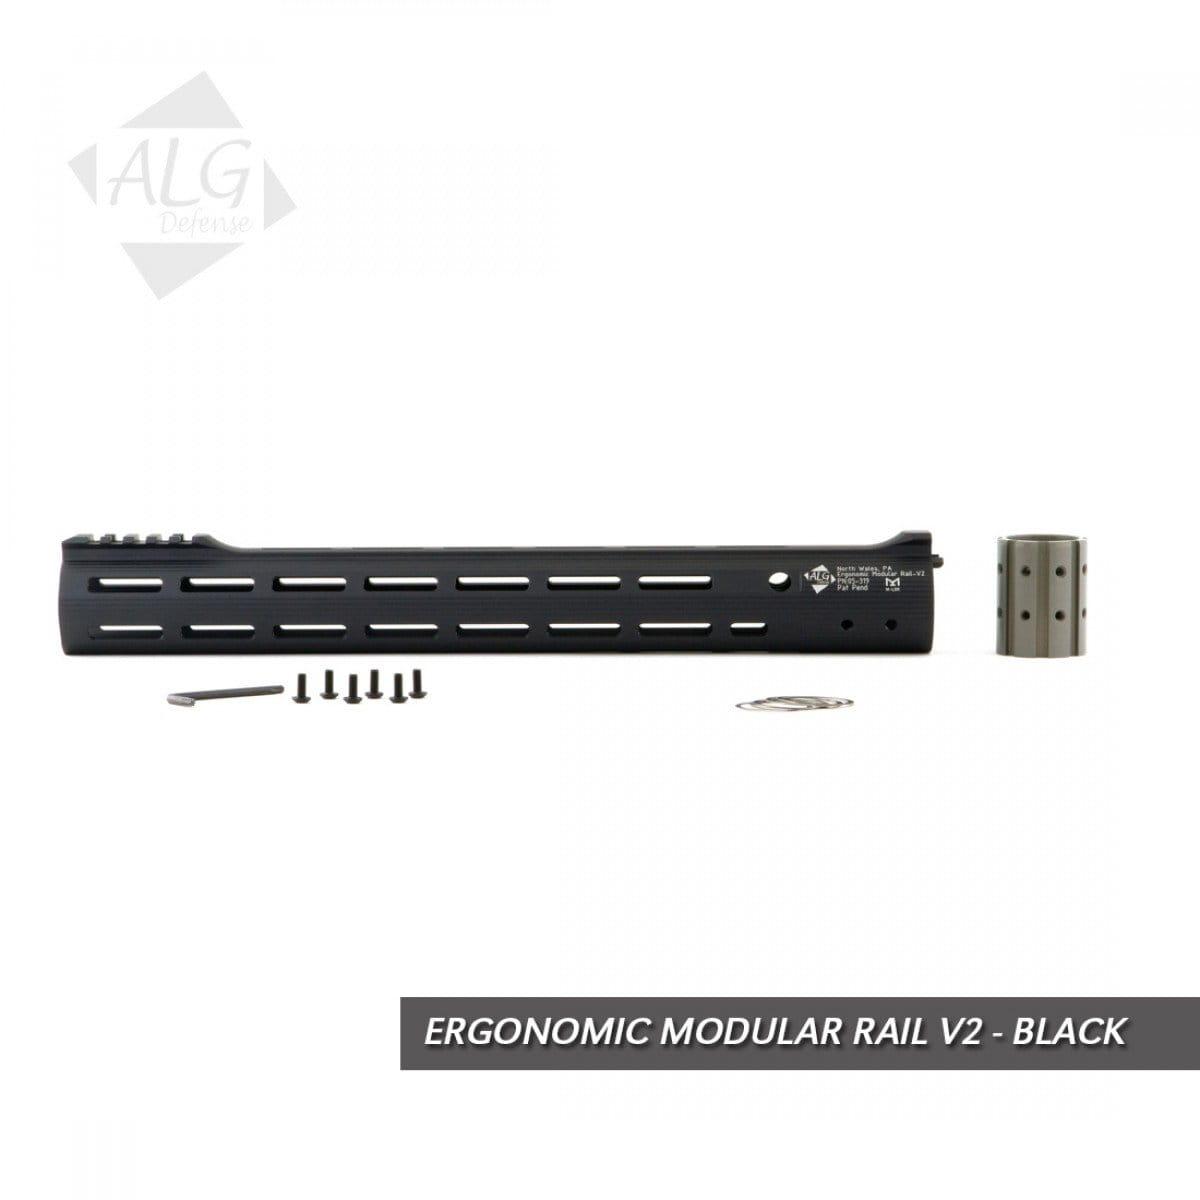 "Łoże 15"" do AR-15 - Super Modular Rail MK14-M-LOCK"